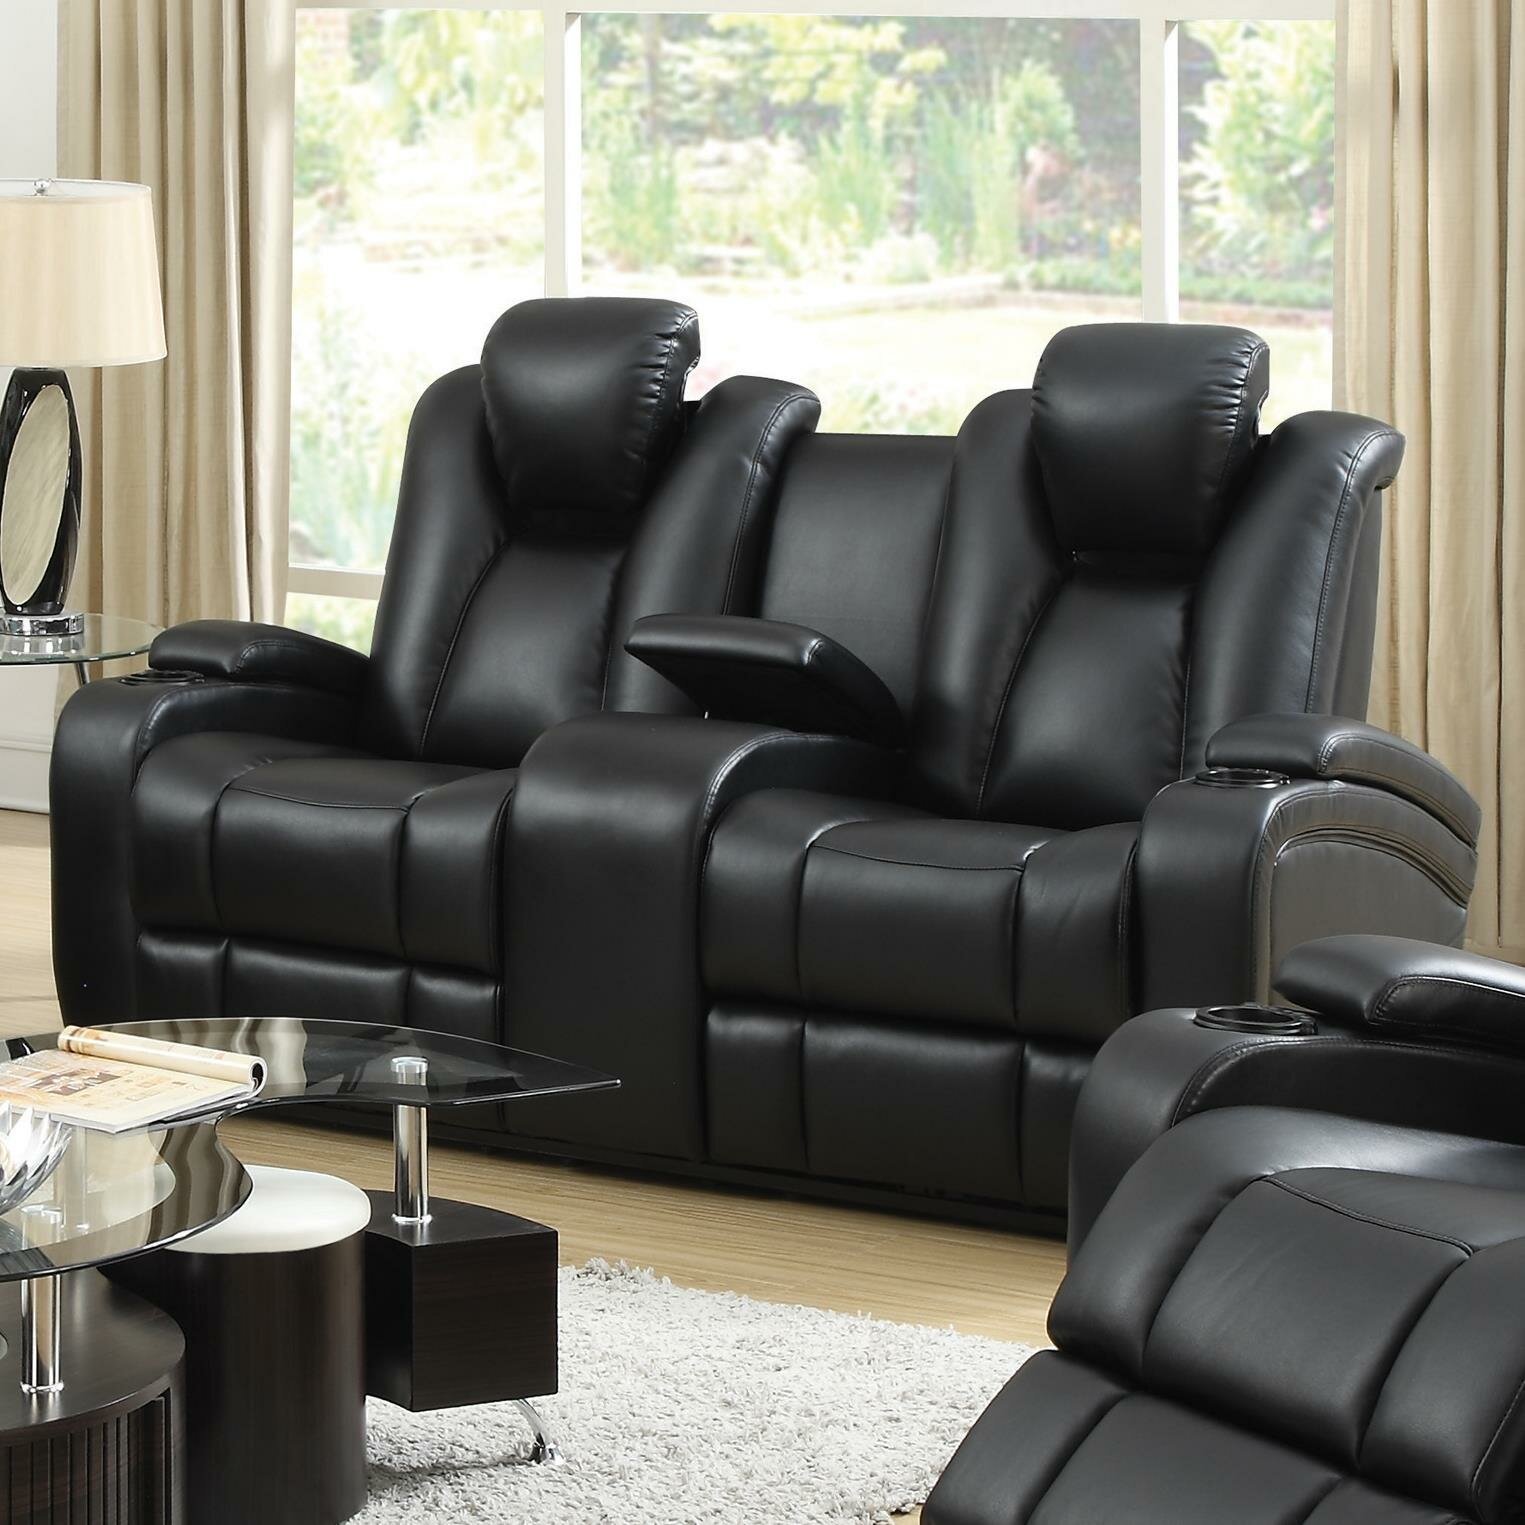 abbyson top reclining garden product home loveseat overstock grain today living shipping madison free pushback leather